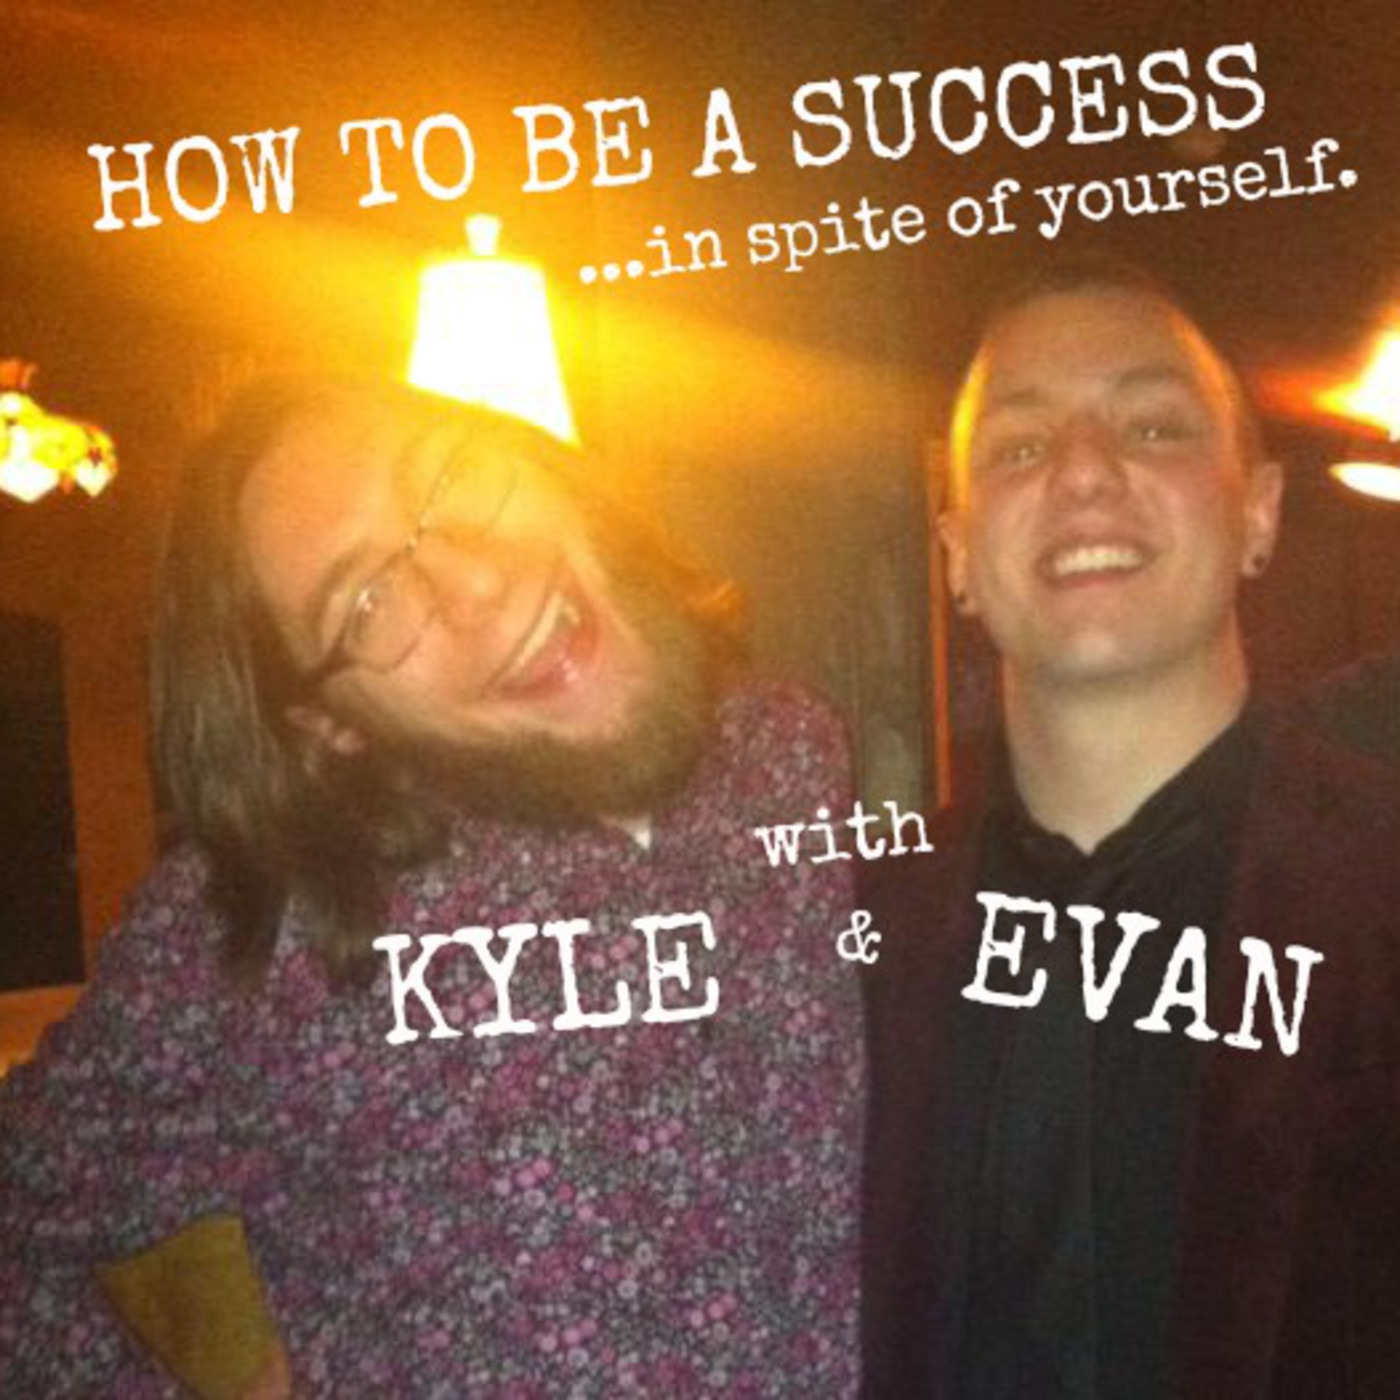 How To Be A Success In Spite Of Yourself